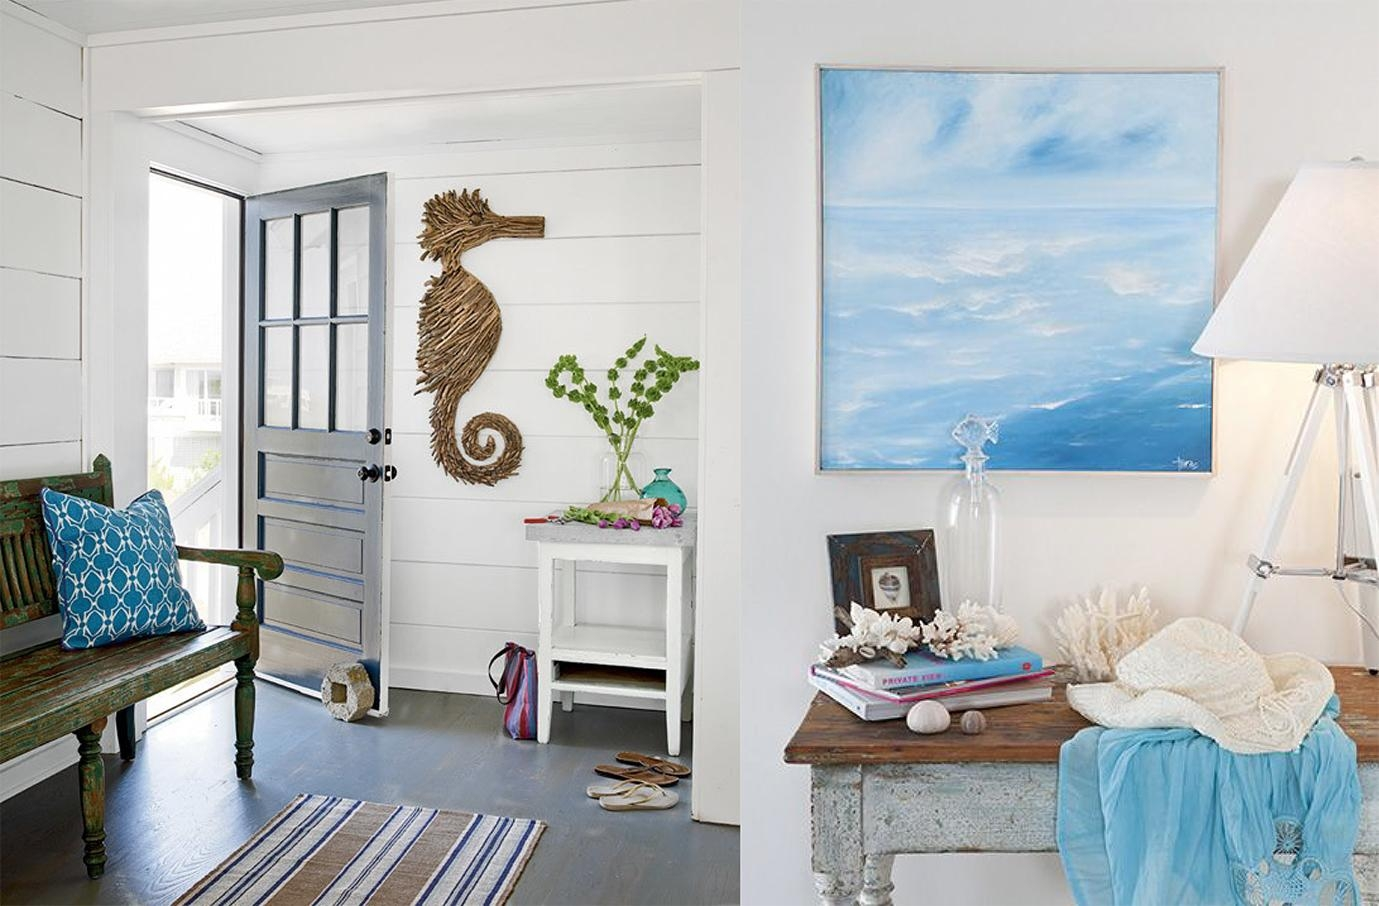 Bring Beach To Your House With Coastal Wall Decor — Unique With Regard To Beach Cottage Wall Decors (View 9 of 20)